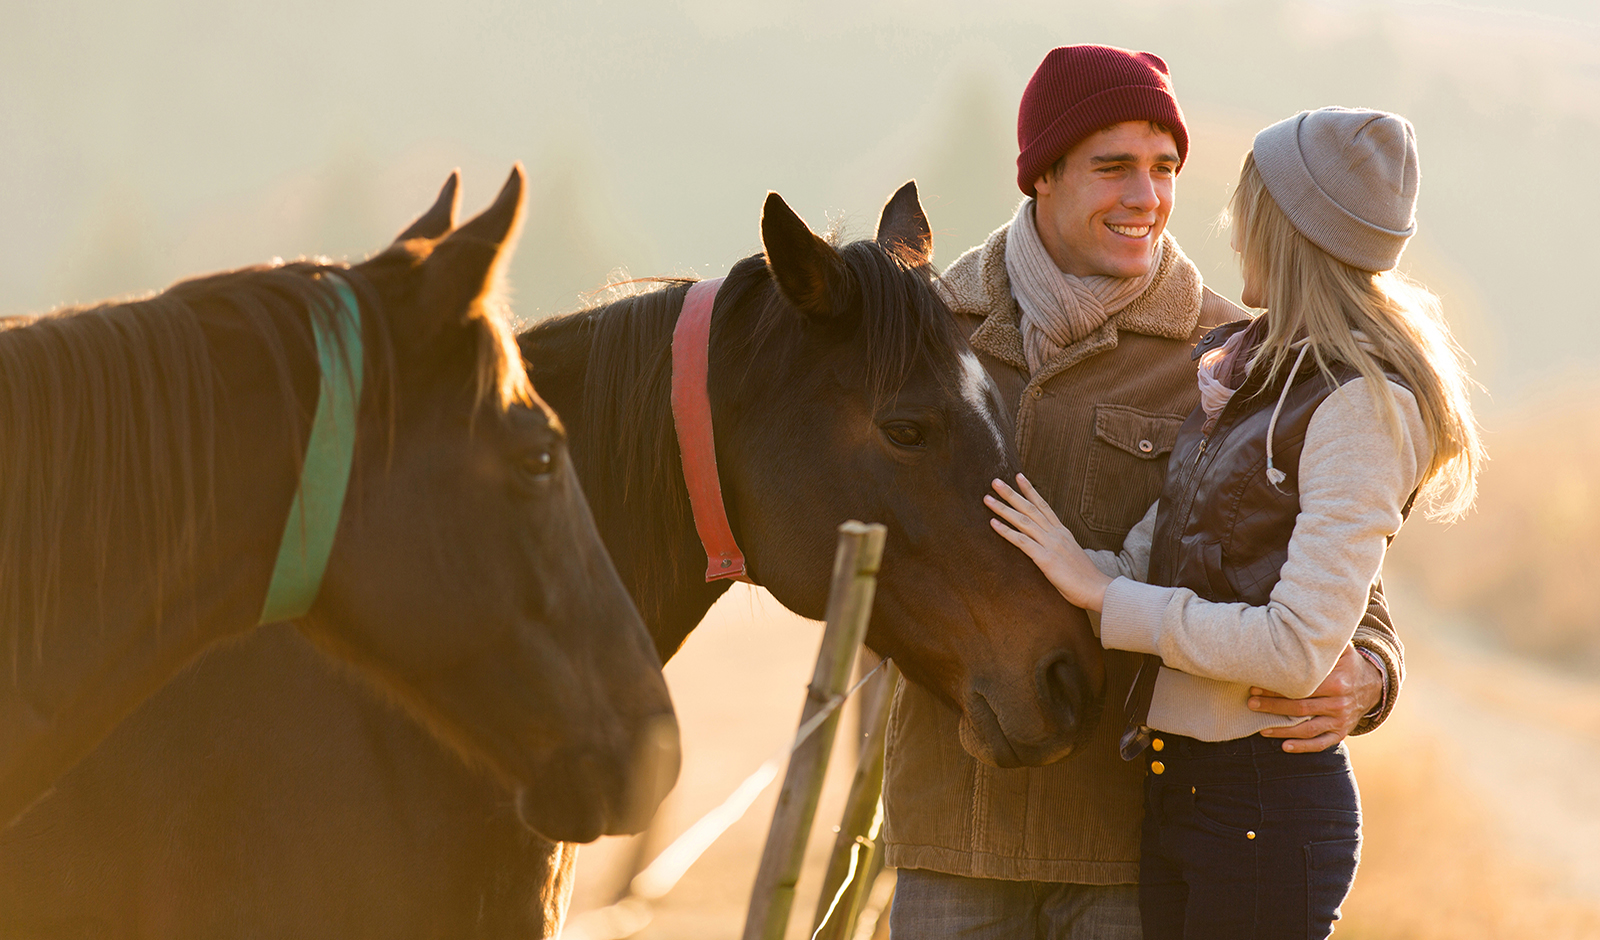 fine-line-between-yes-and-no-what-to-choose-woman-and-man-with-horses